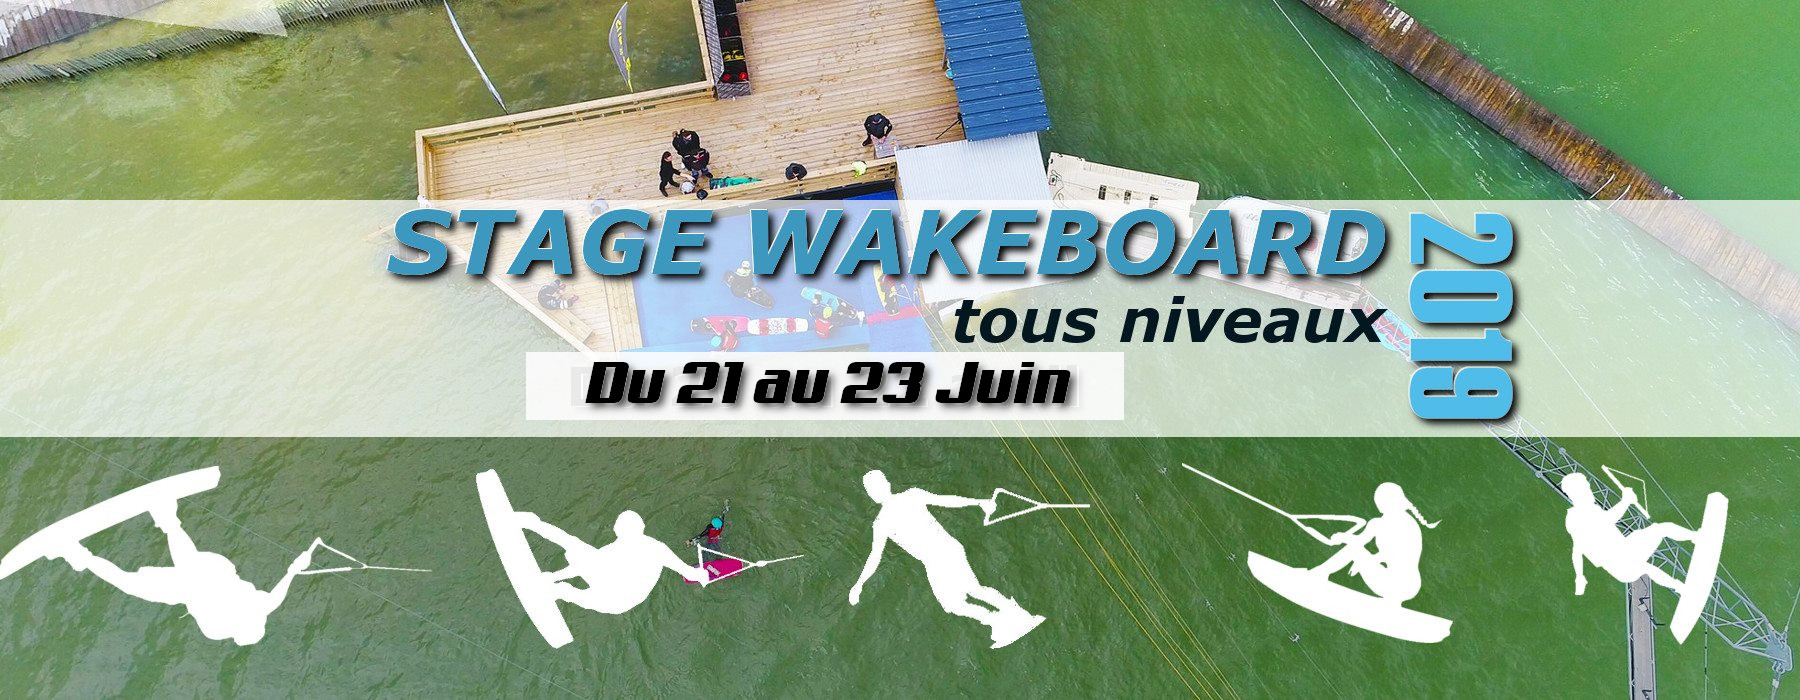 Stage wakeboard 21-23 juin